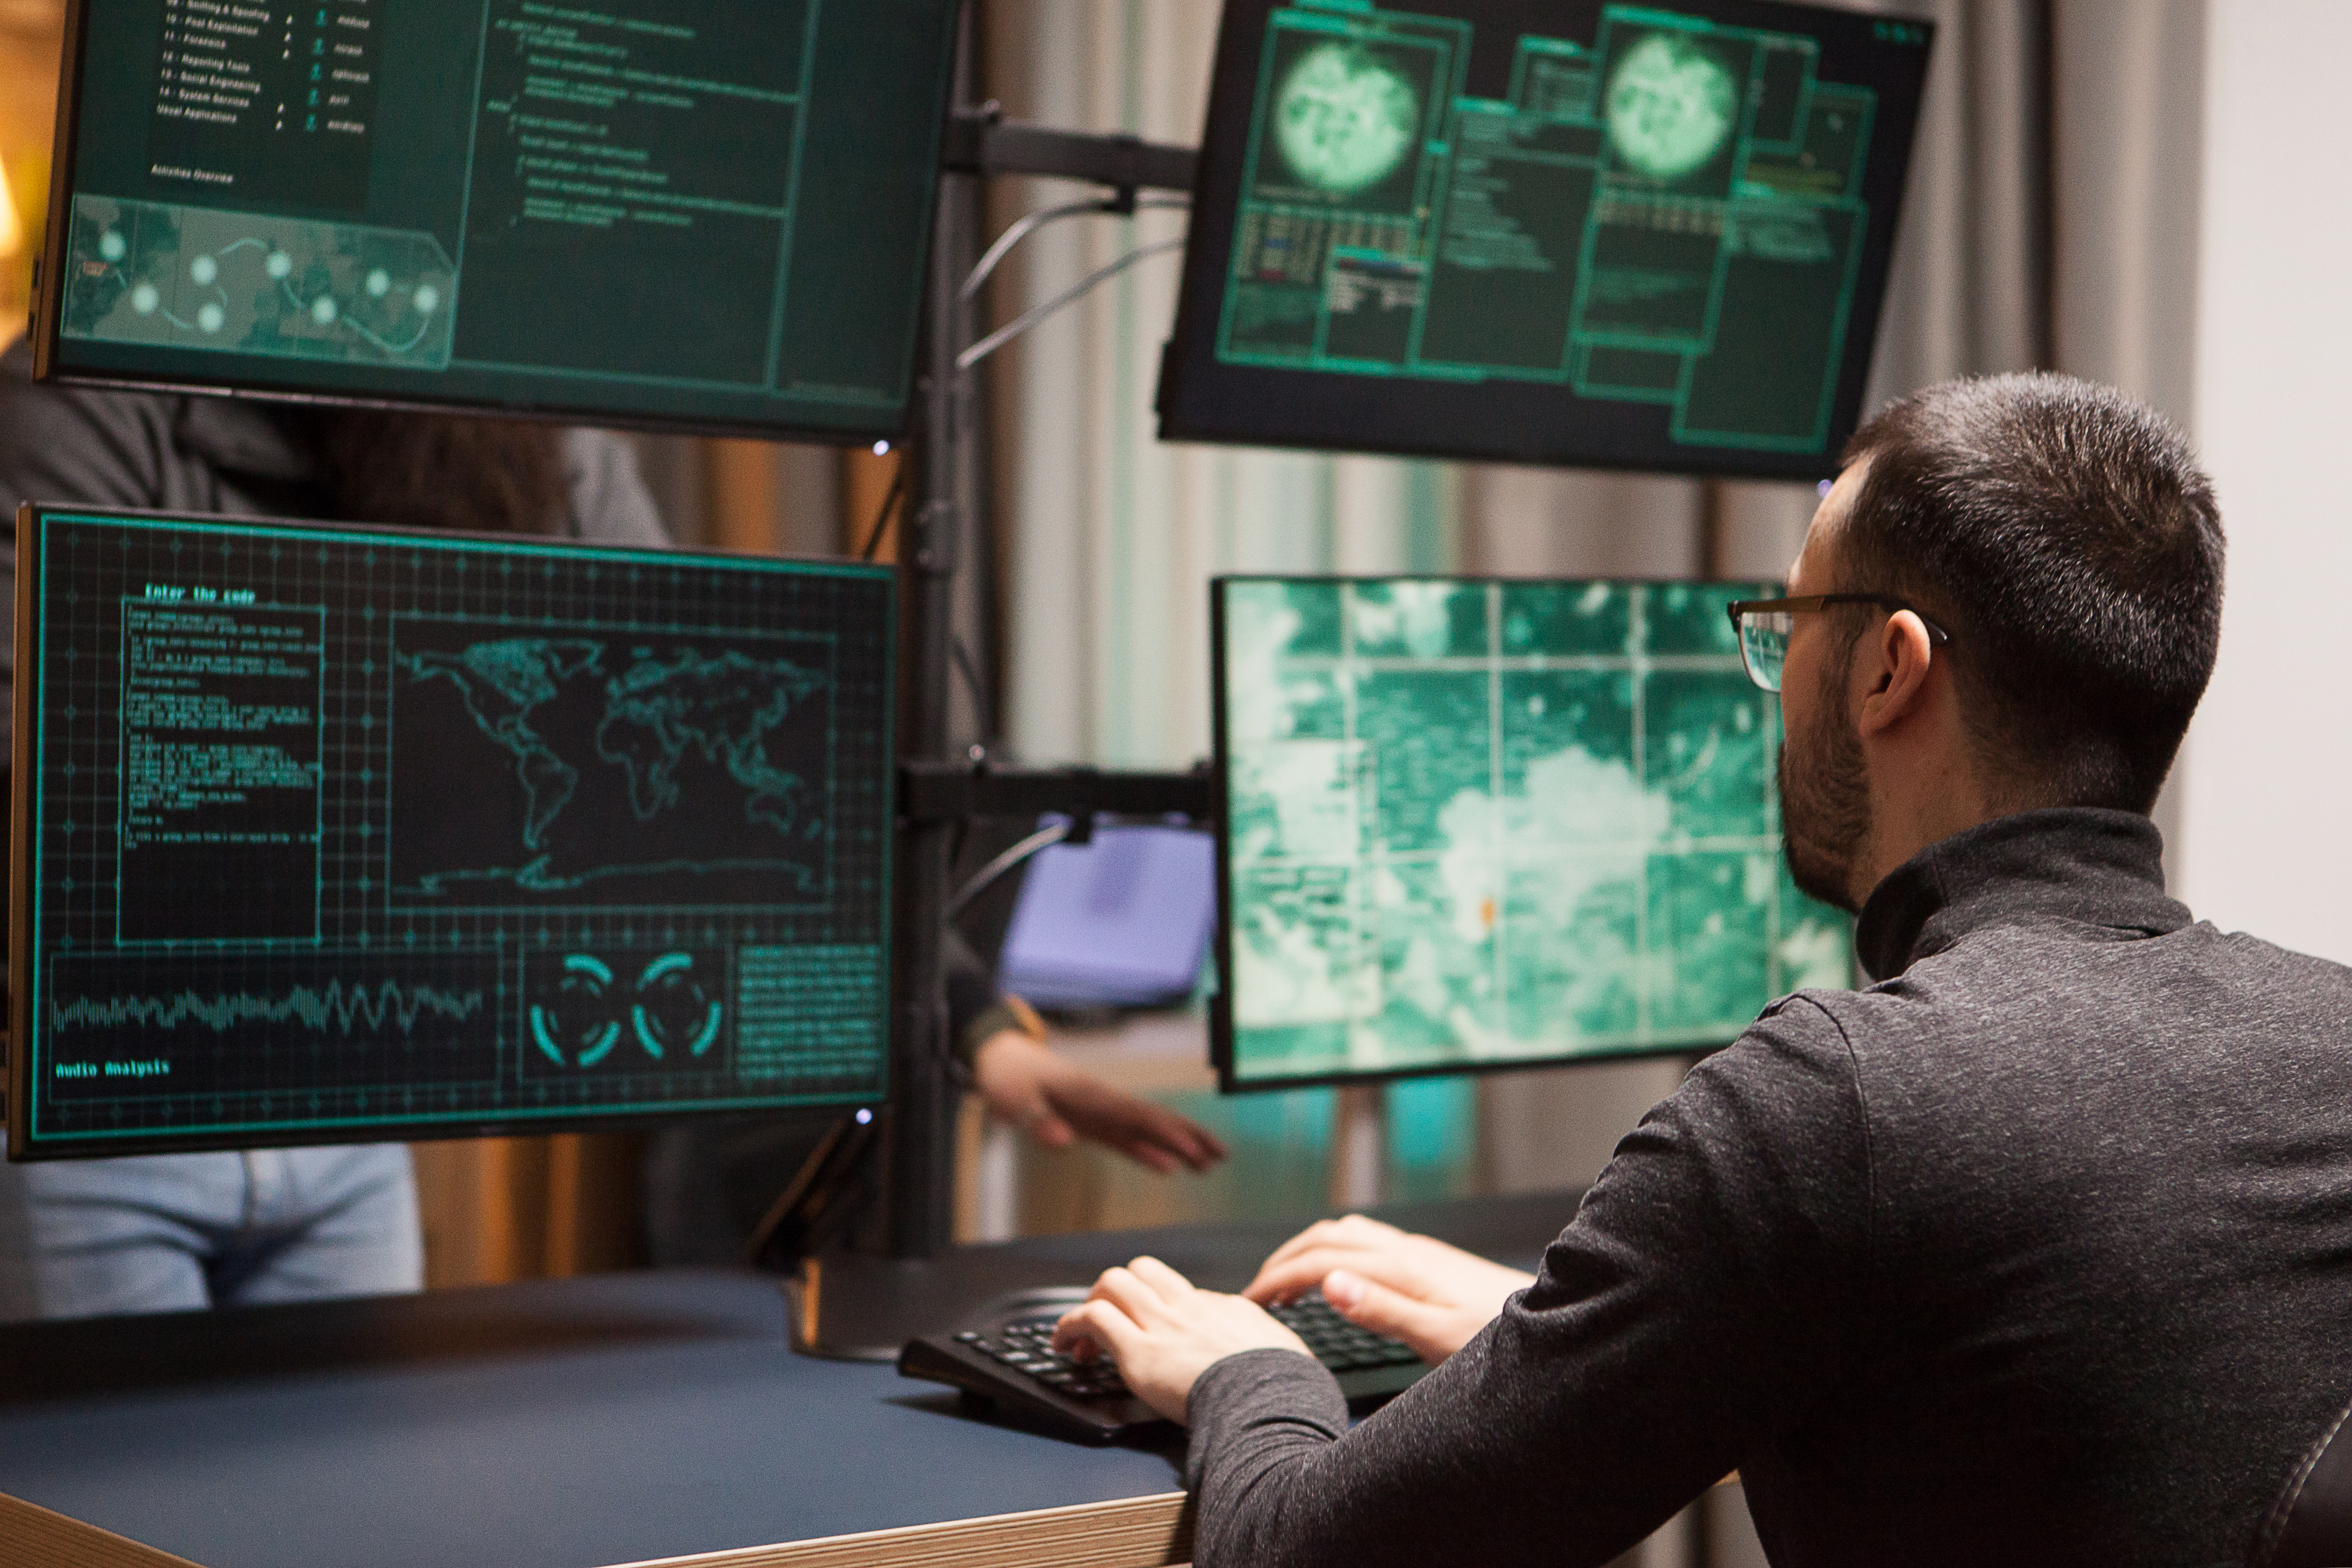 6 Common Types of Cyber Attacks and Their Prevention Tips